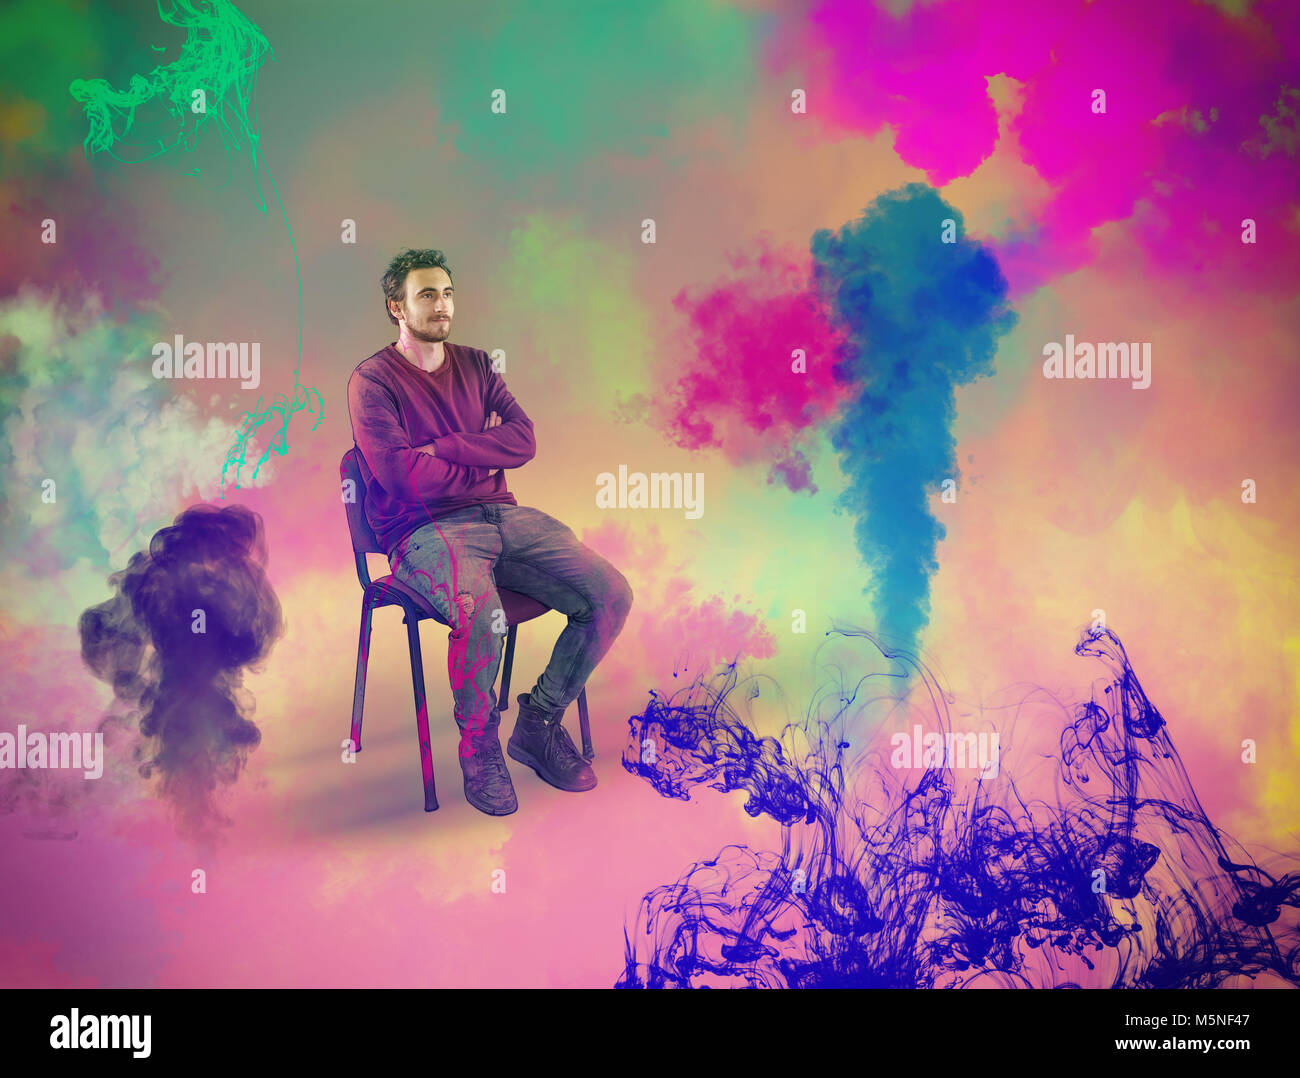 Young man sitting on chair while he visualize colorful ink and steam. The concept of creativity and visualization. - Stock Image